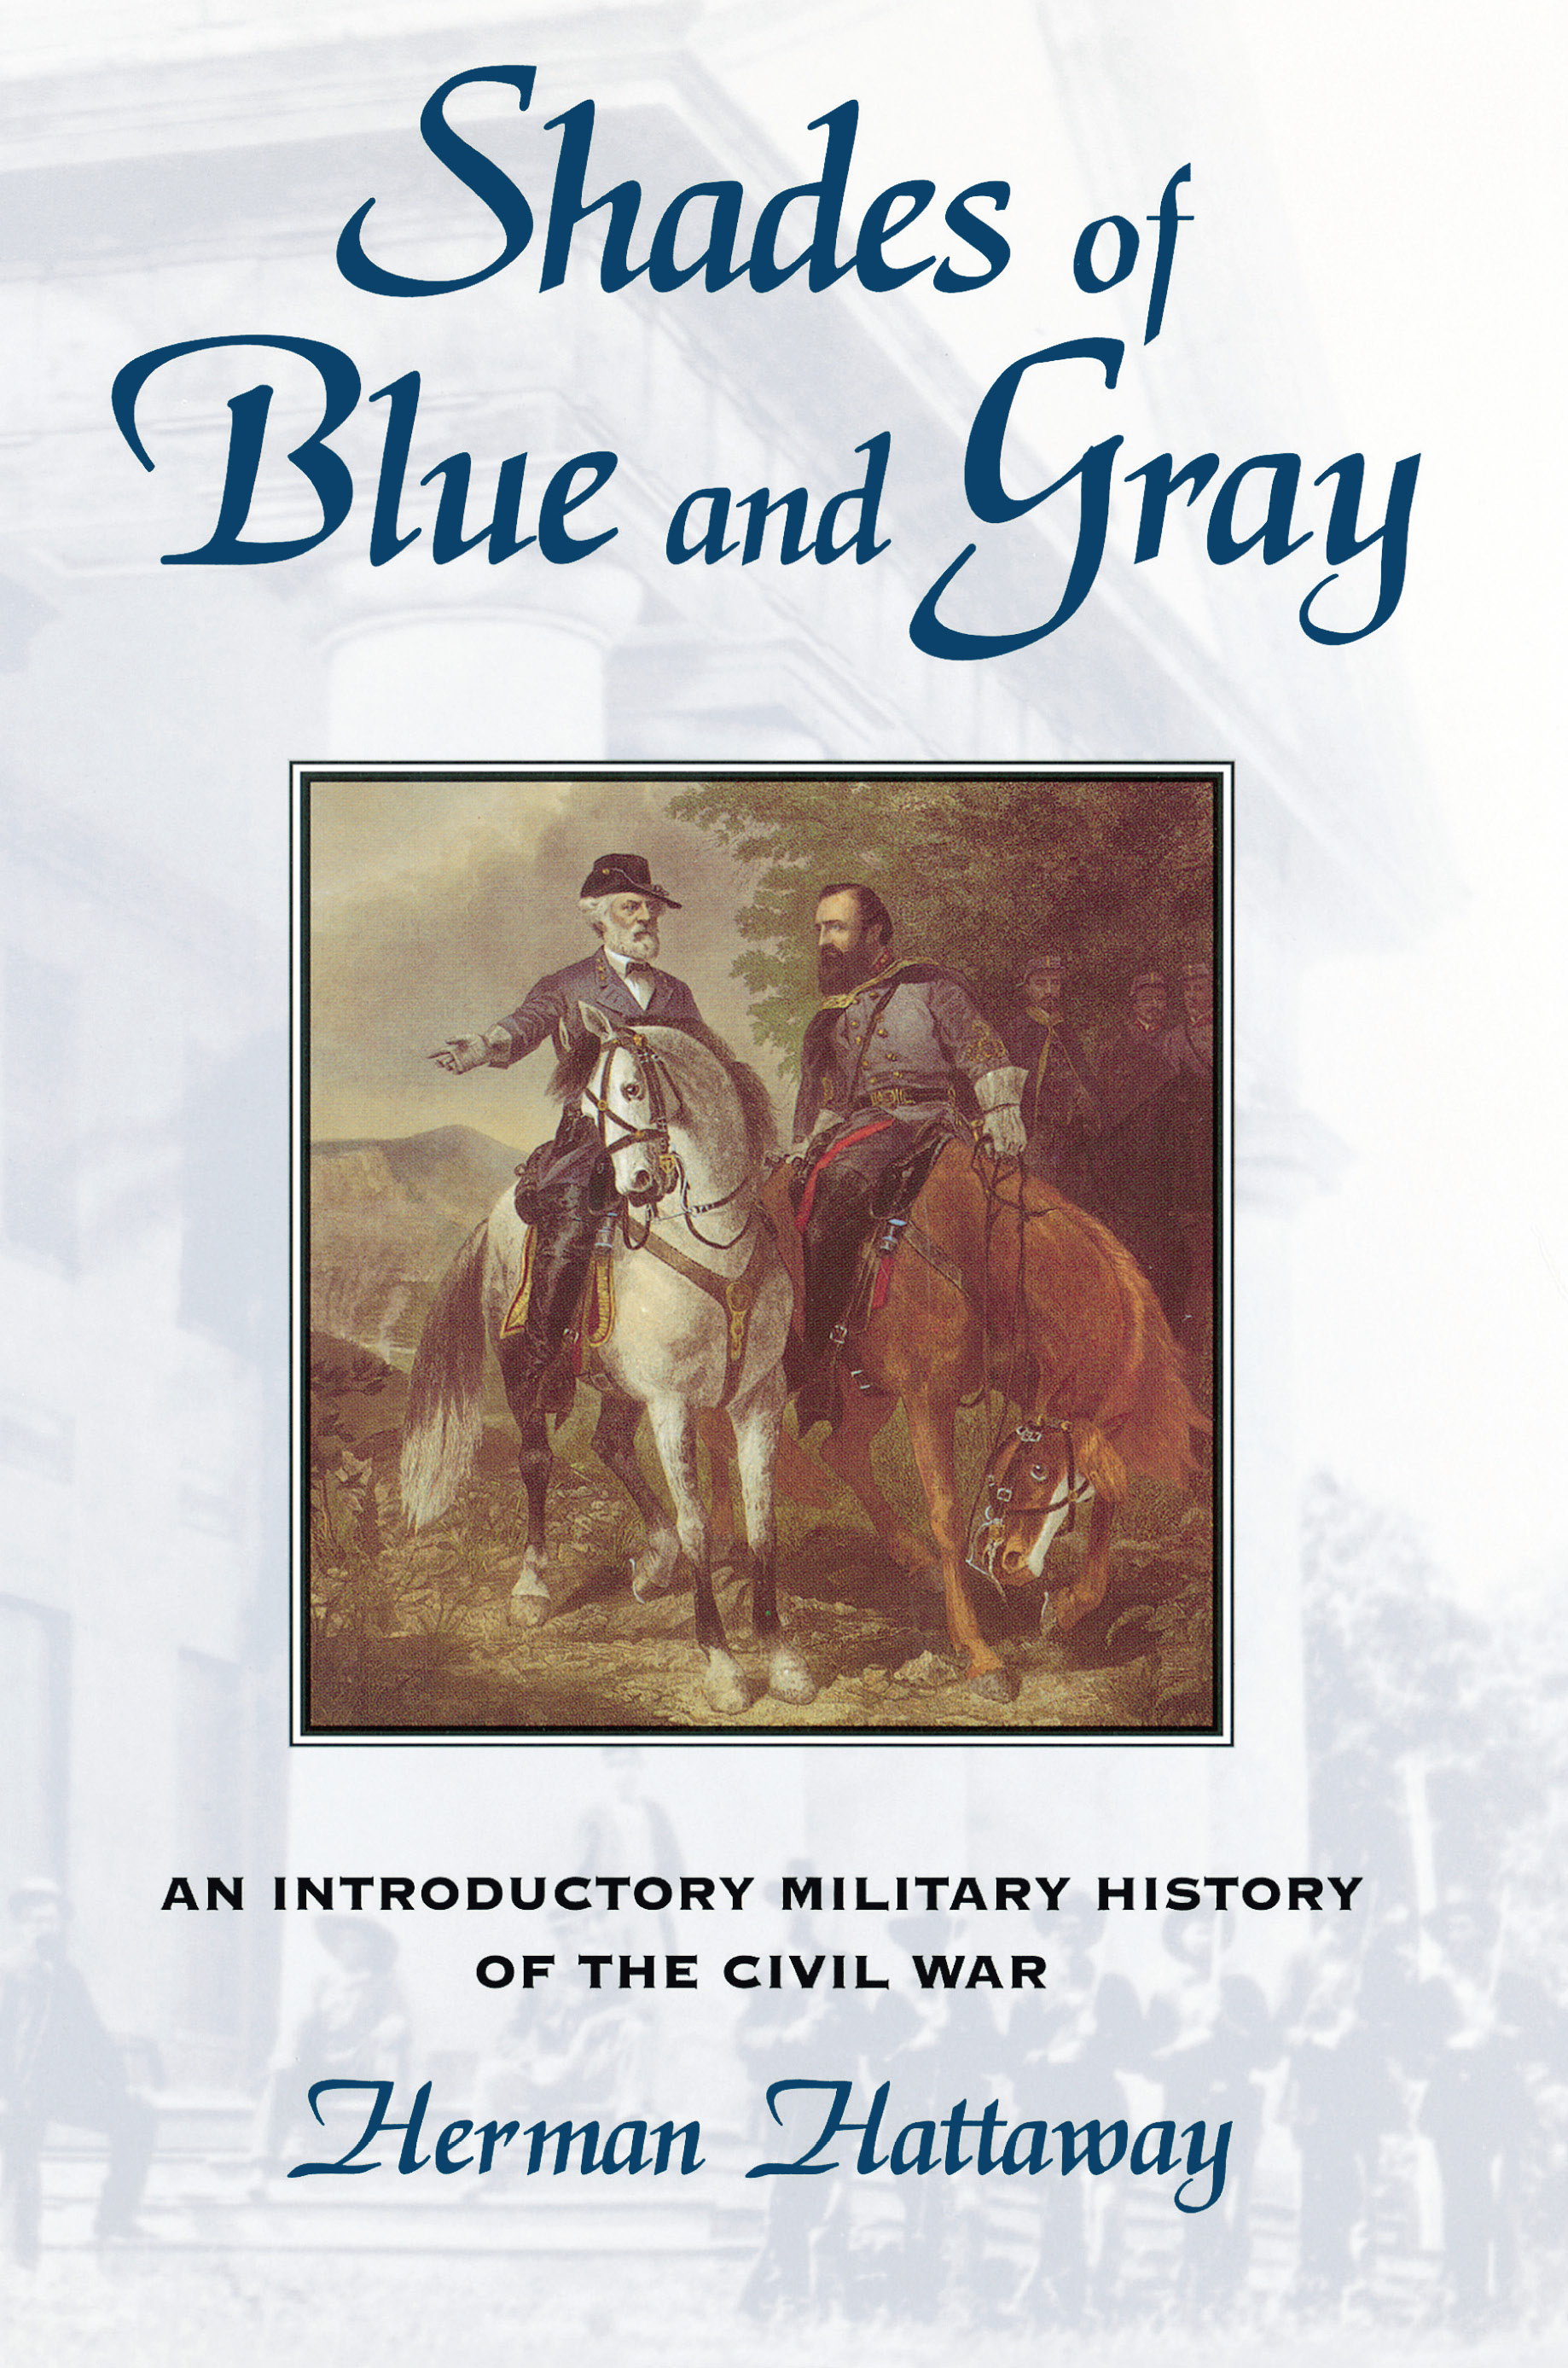 an introduction to the history of the end of the american civil war The american civil war: a military history discovered he had written a history of the american civil war the end so much information had been repeated.